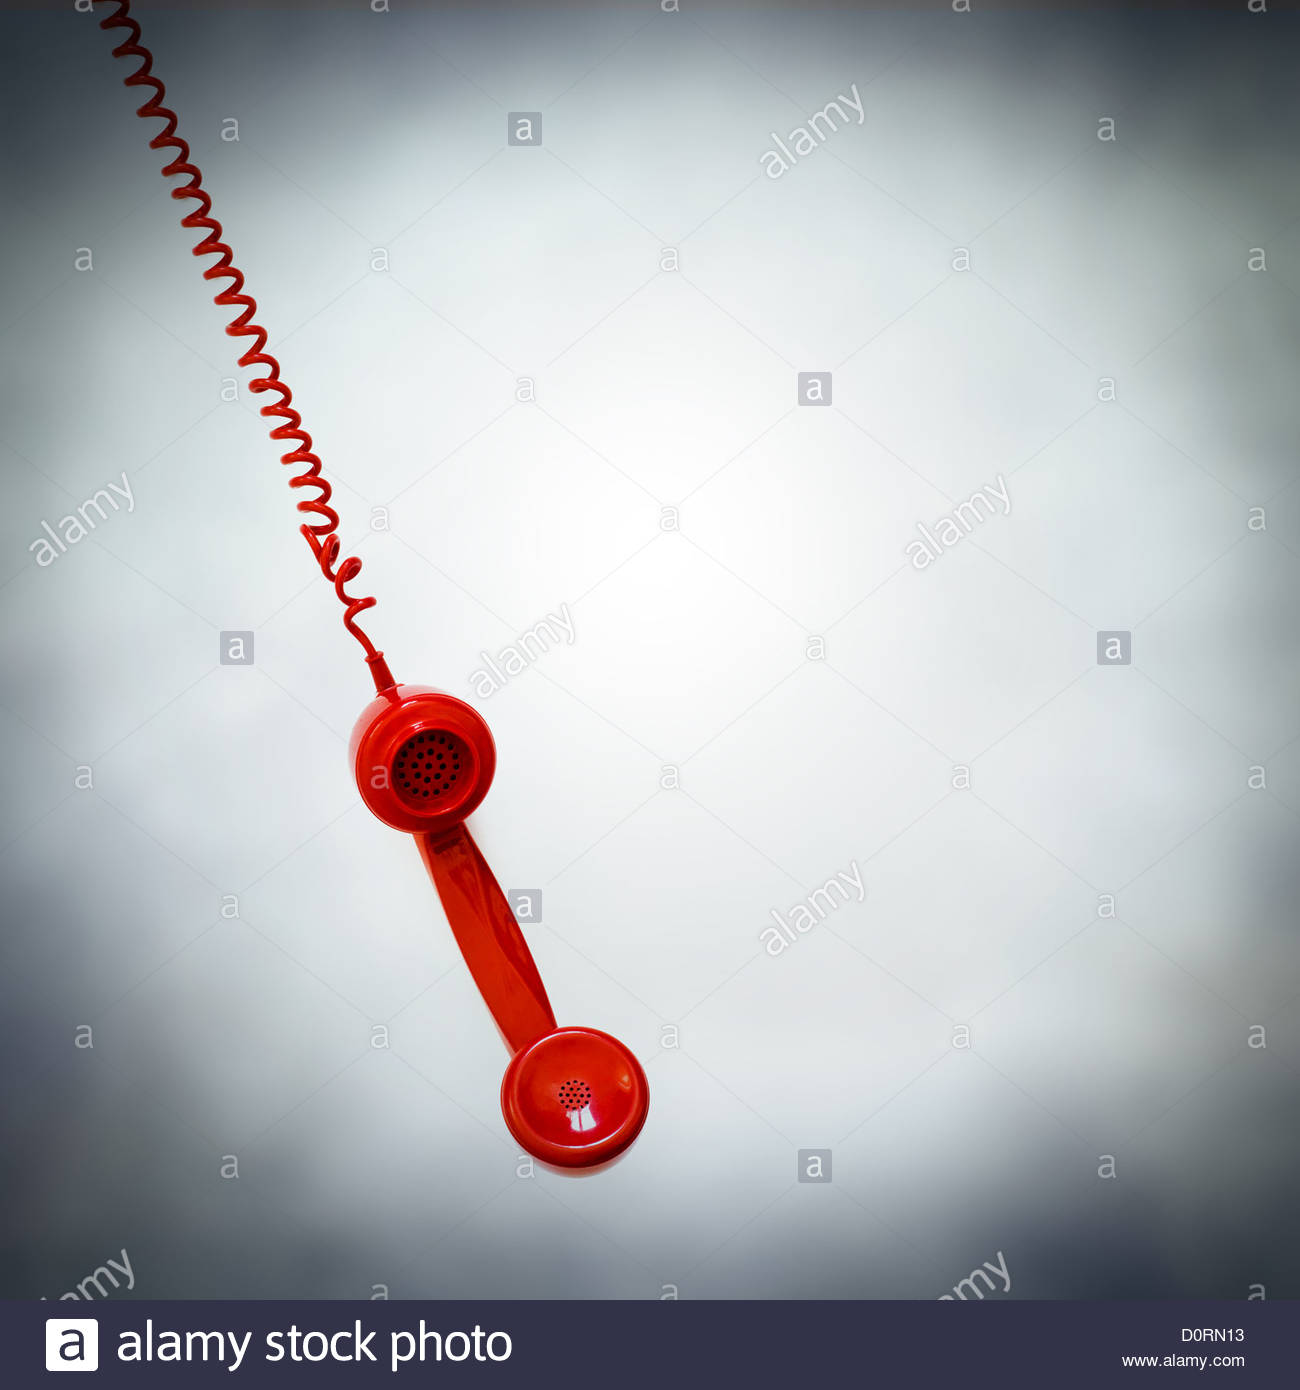 red phone hanging - Stock Image